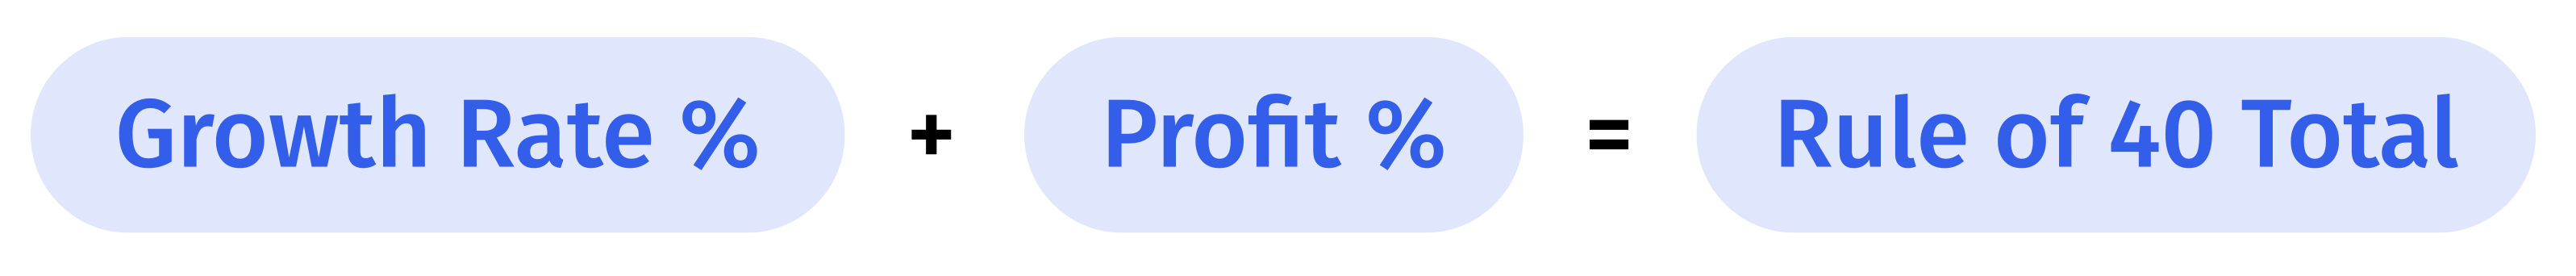 saas rule of 40 calculation growth rate % + profit % = rule of 40 total